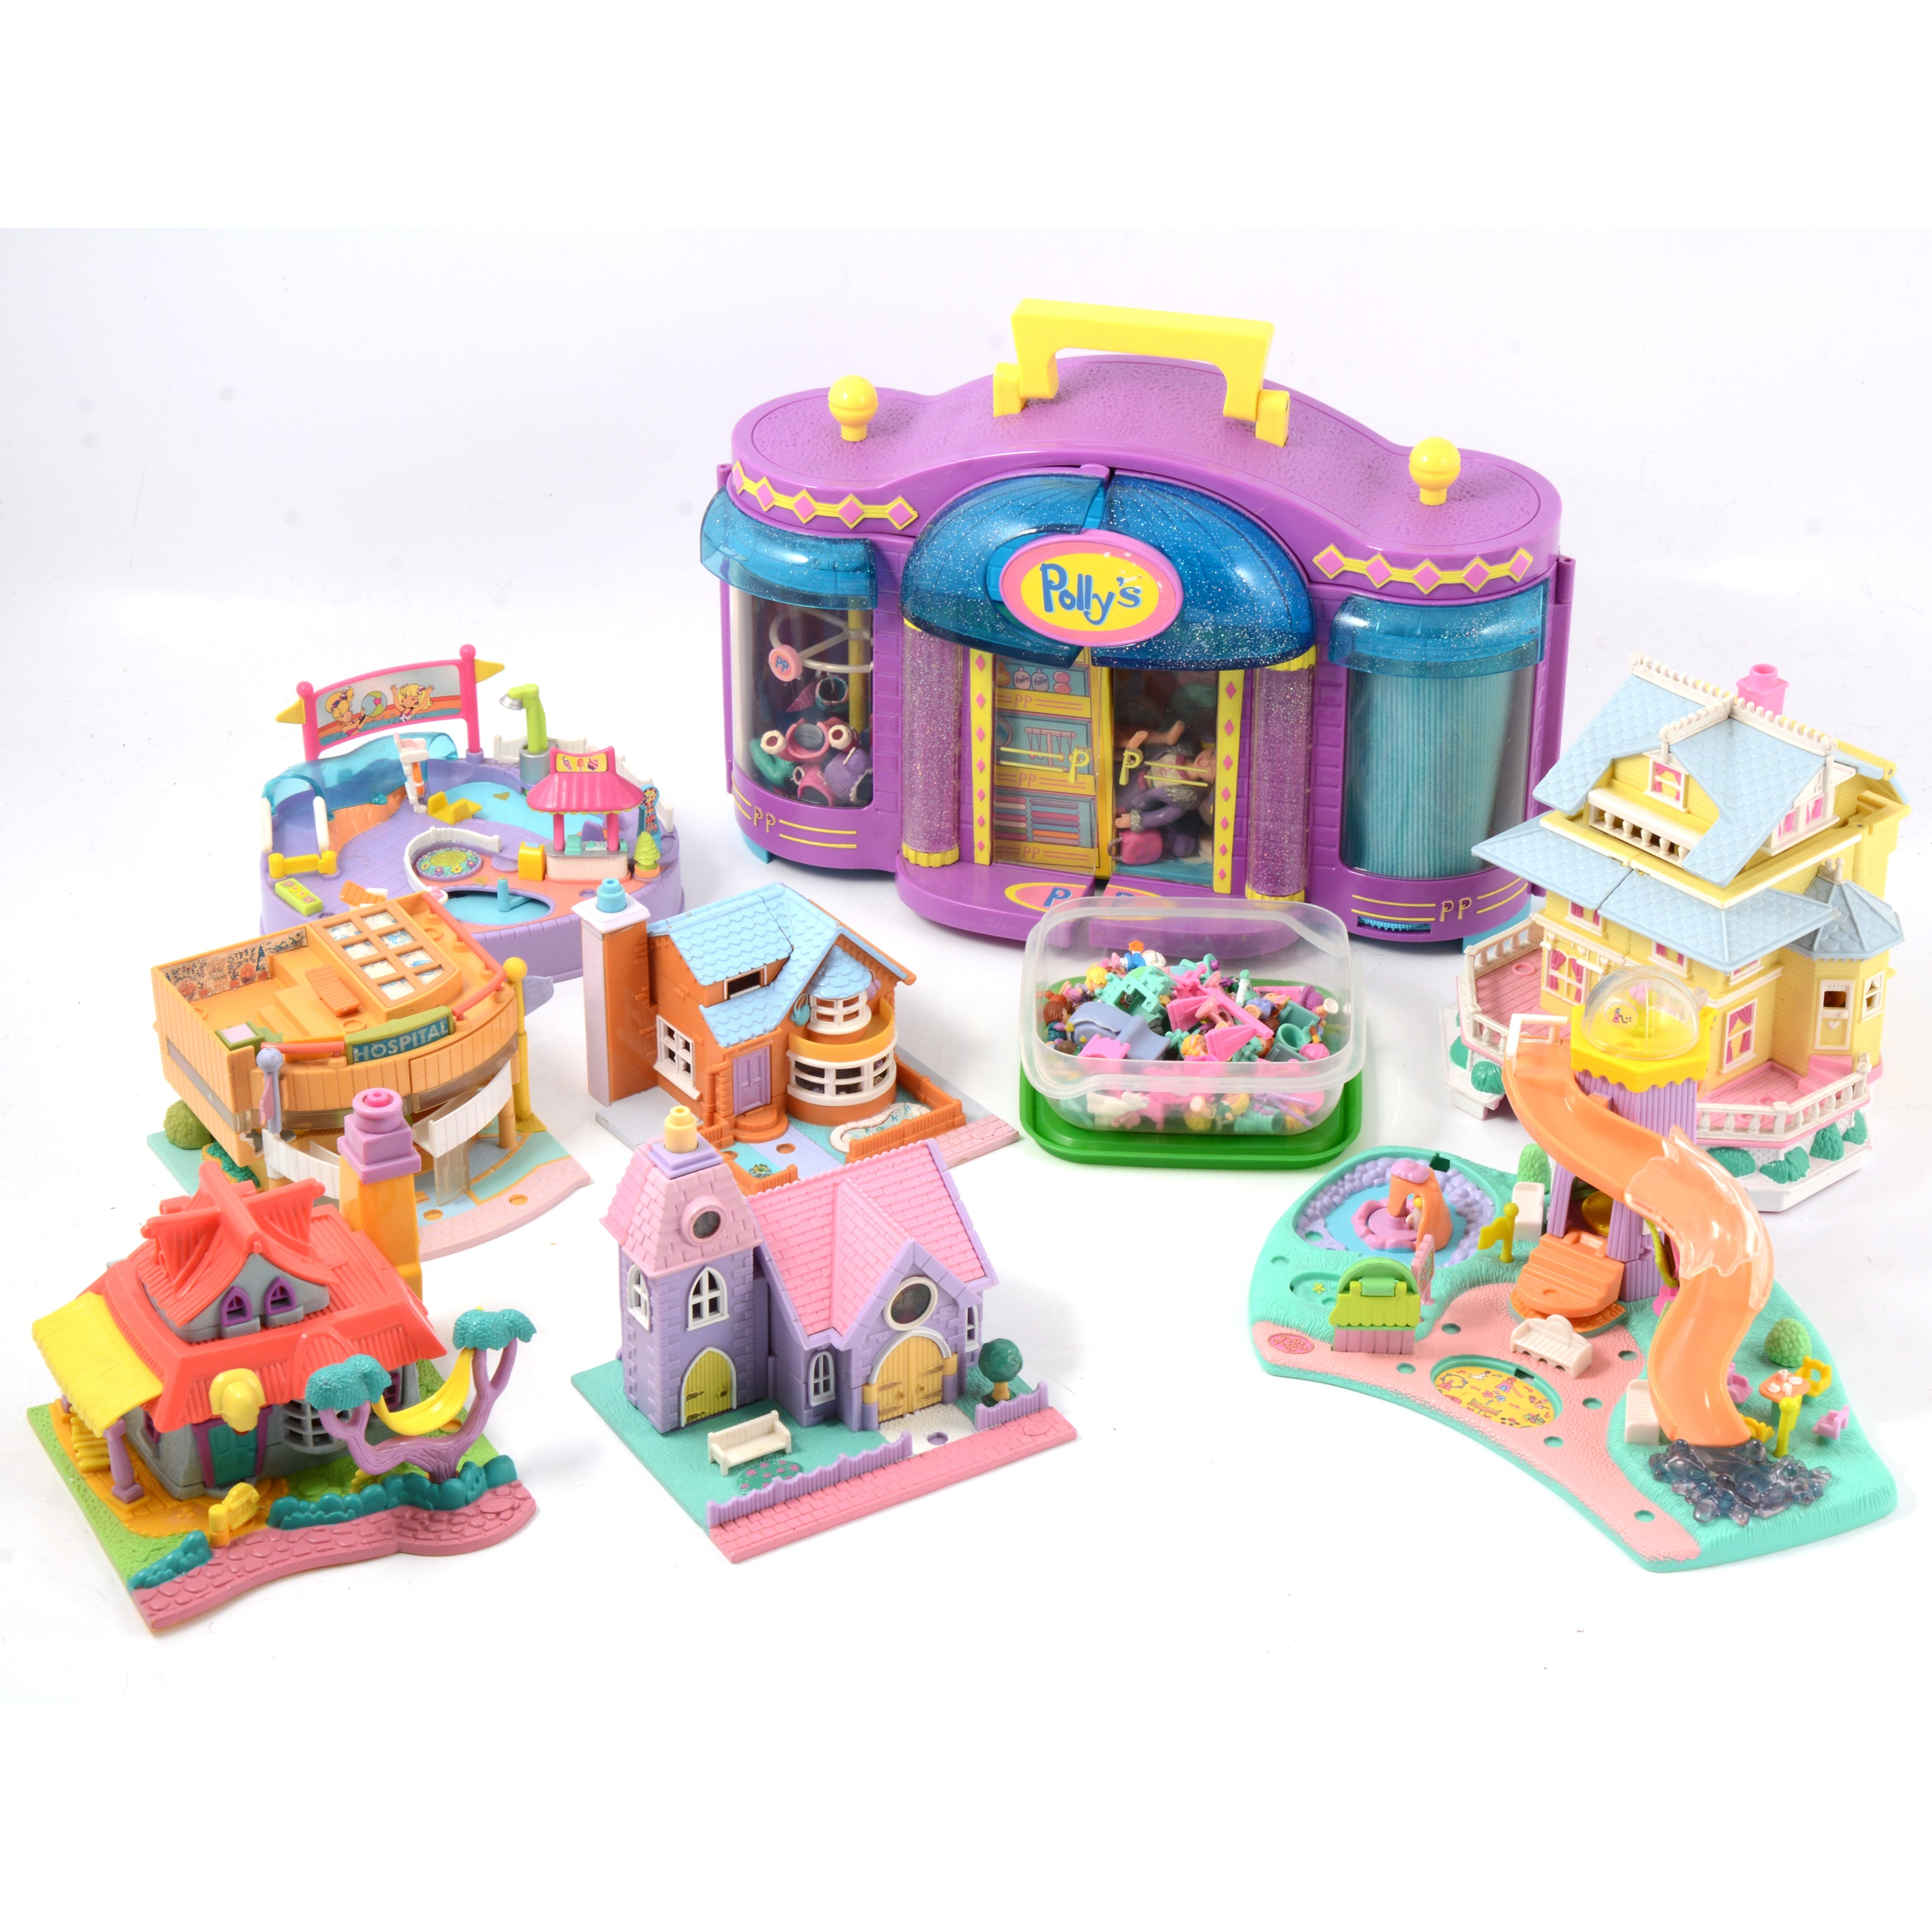 Polly Pockets by Bluebird, a collection of approx 17 sets and other accessories - Image 2 of 2